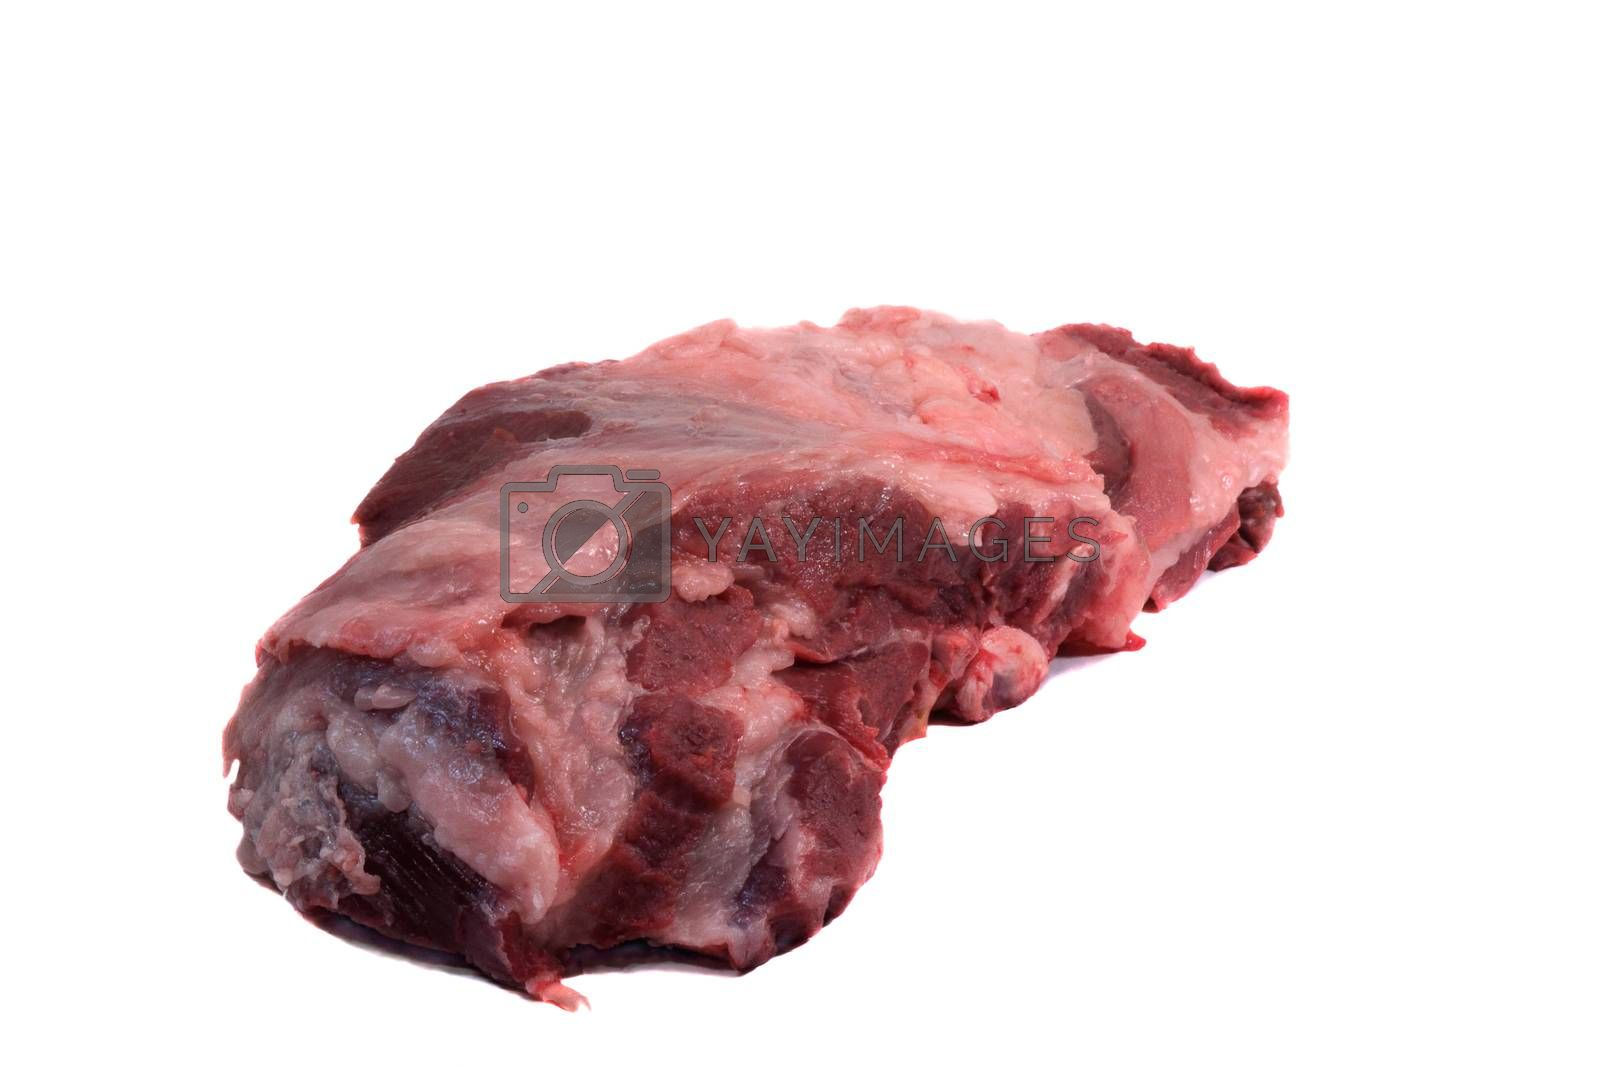 Fresh raw pork meat. Presented on a white background.